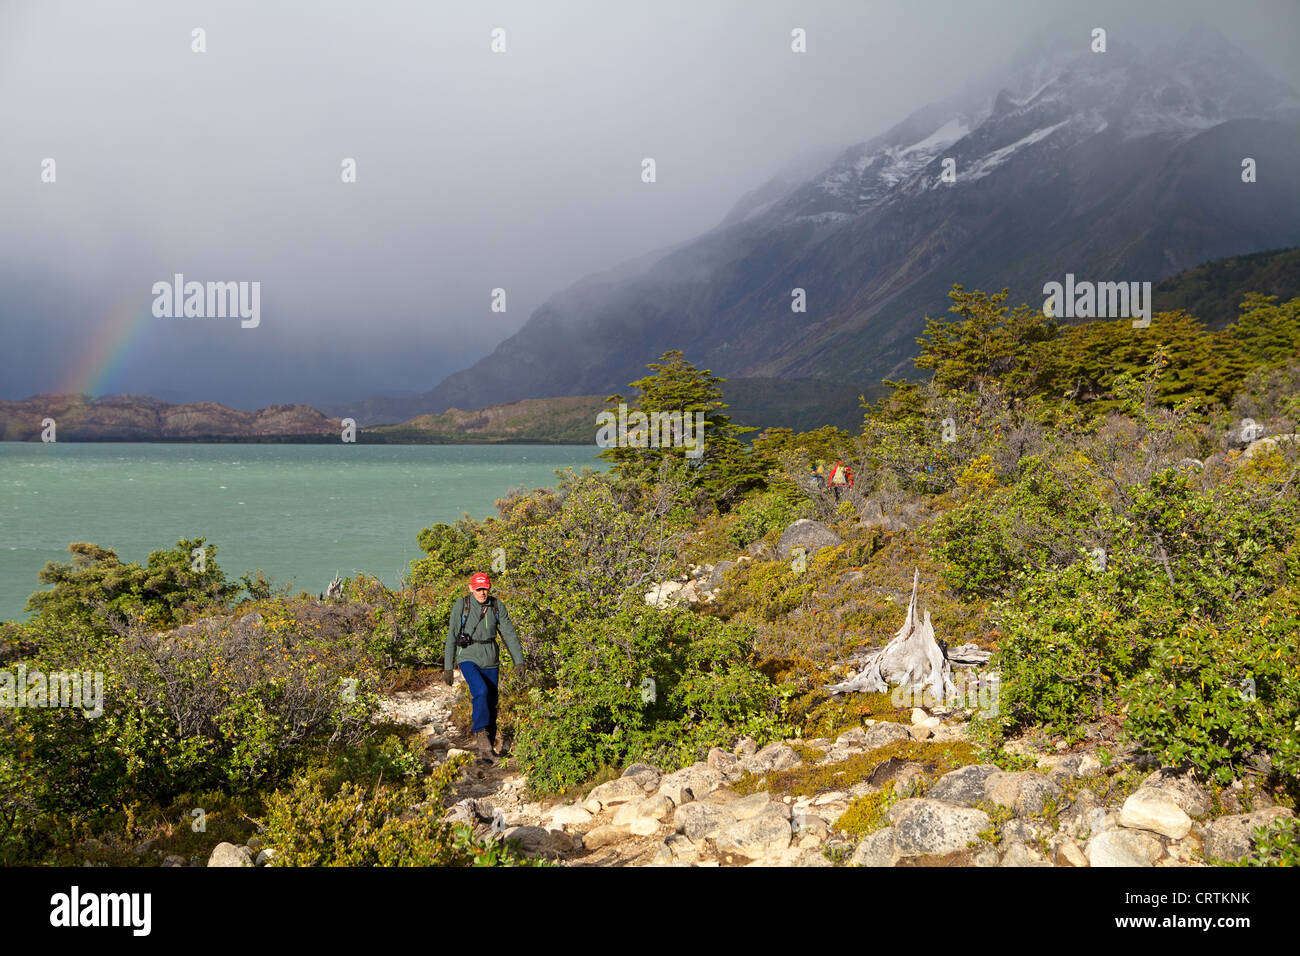 Hiker on the shores of Lago Nordenskjold in Torres del Paine National Park - Stock Image